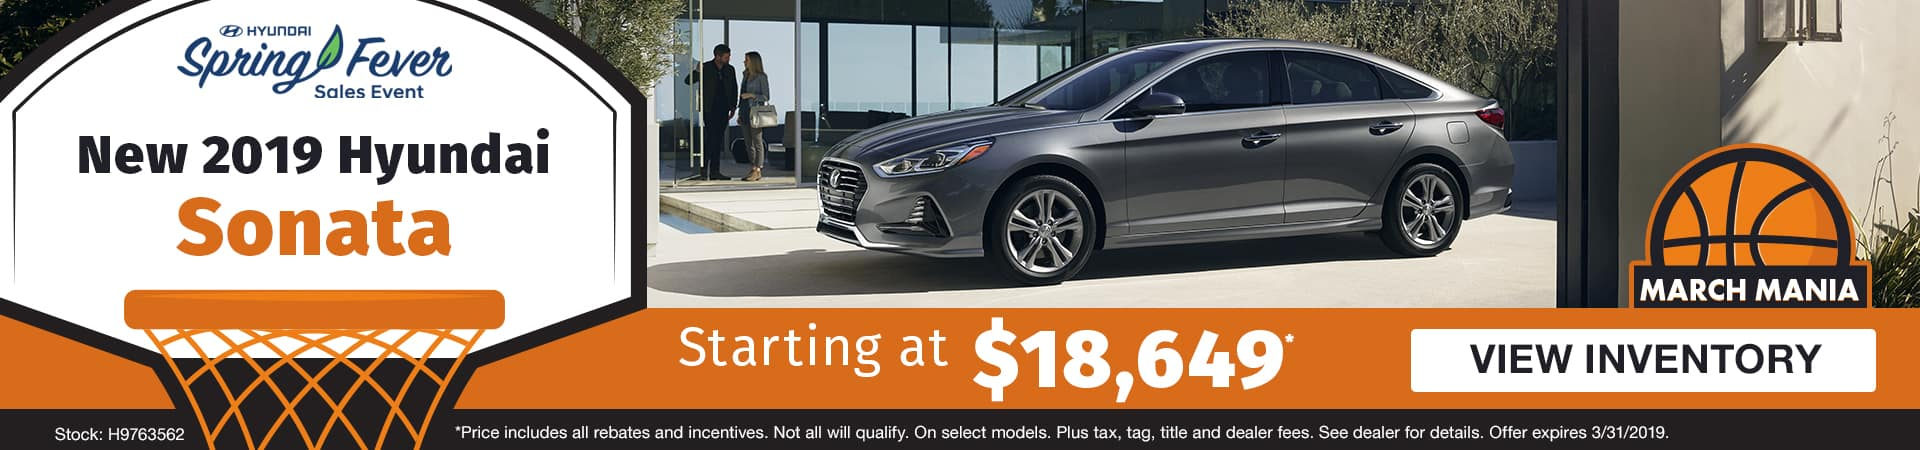 Drive a new 2019 Hyundai Sonata starting at just $18,649 in Murfreesboro TN